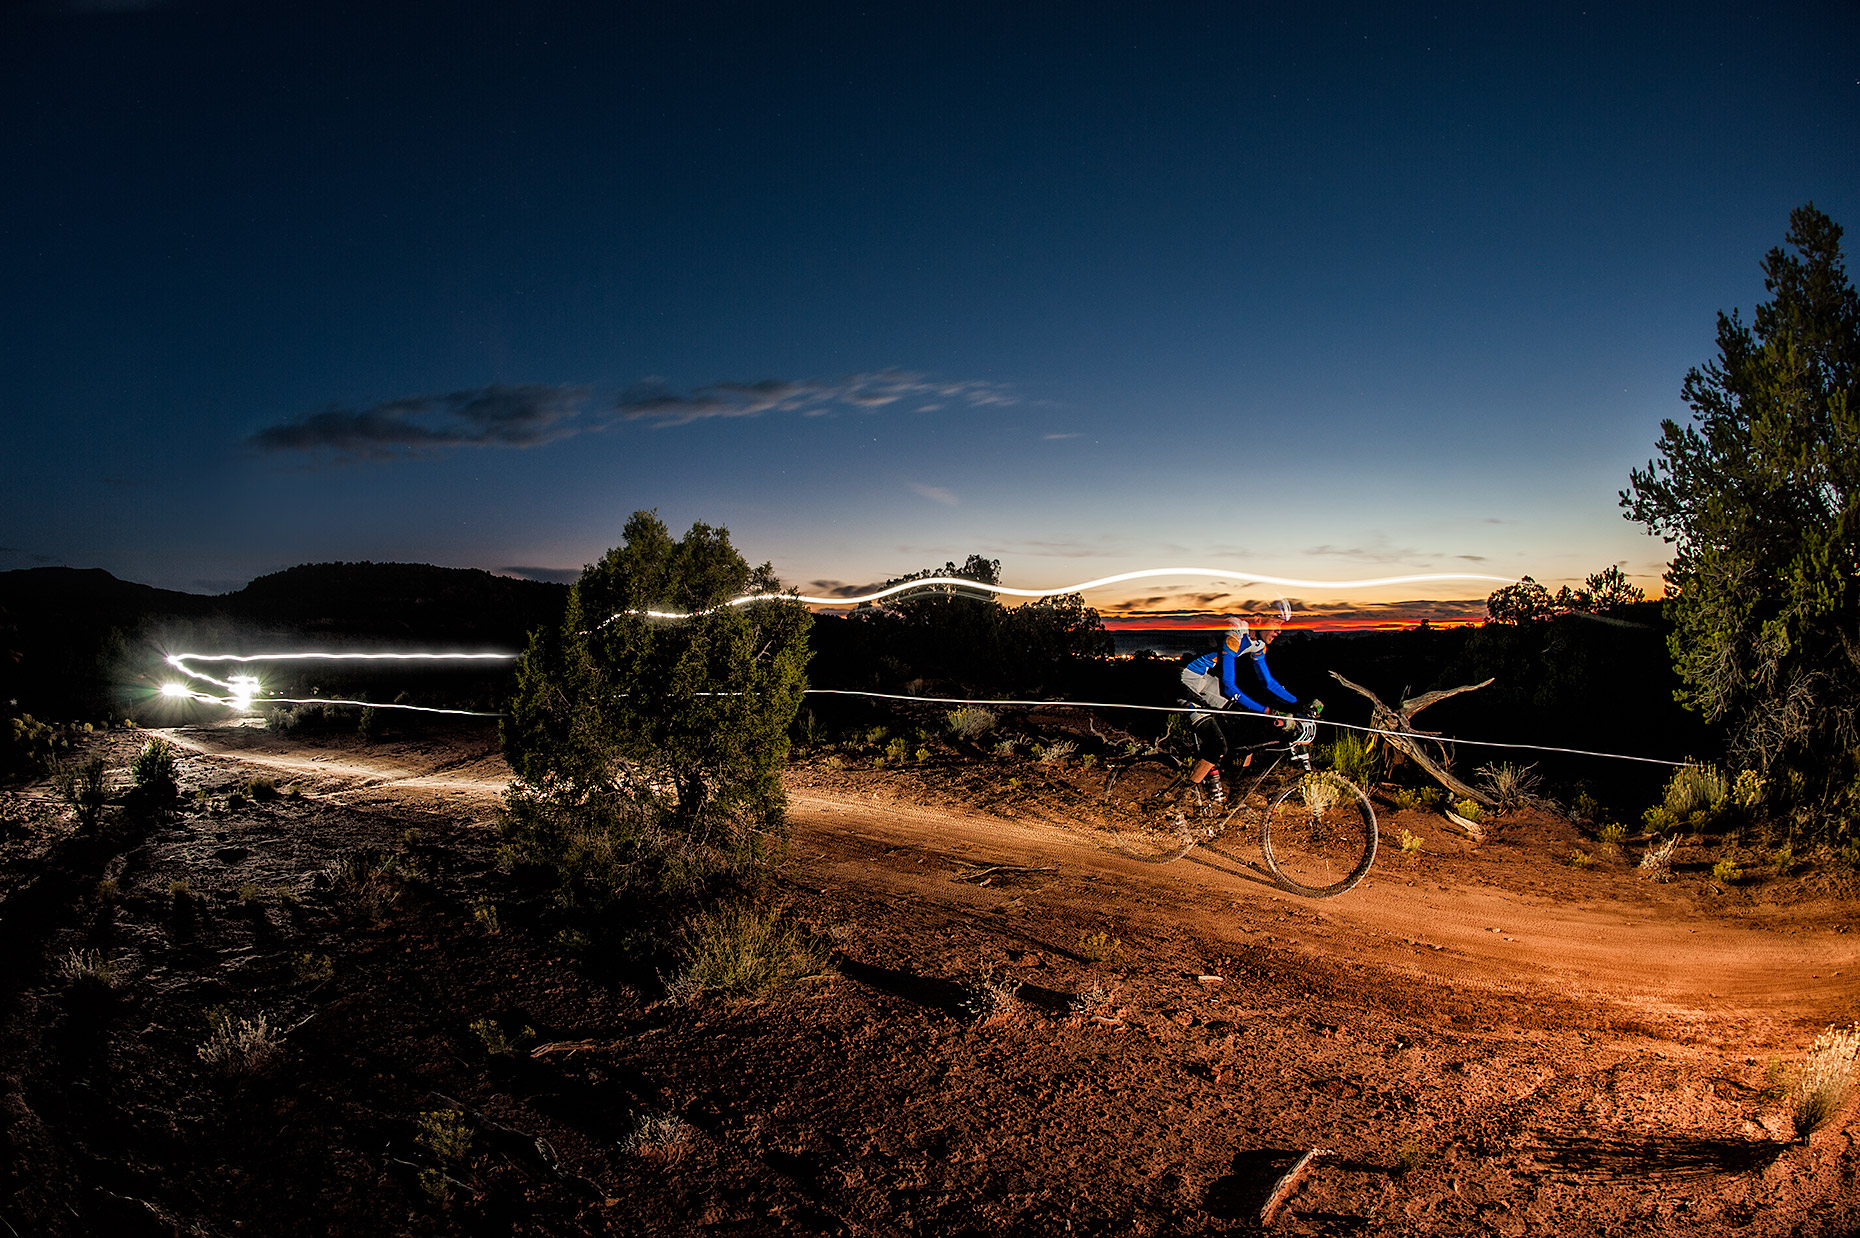 aaron-ingrao-24-hours-of-moab-long-exposure-mountainbike-race